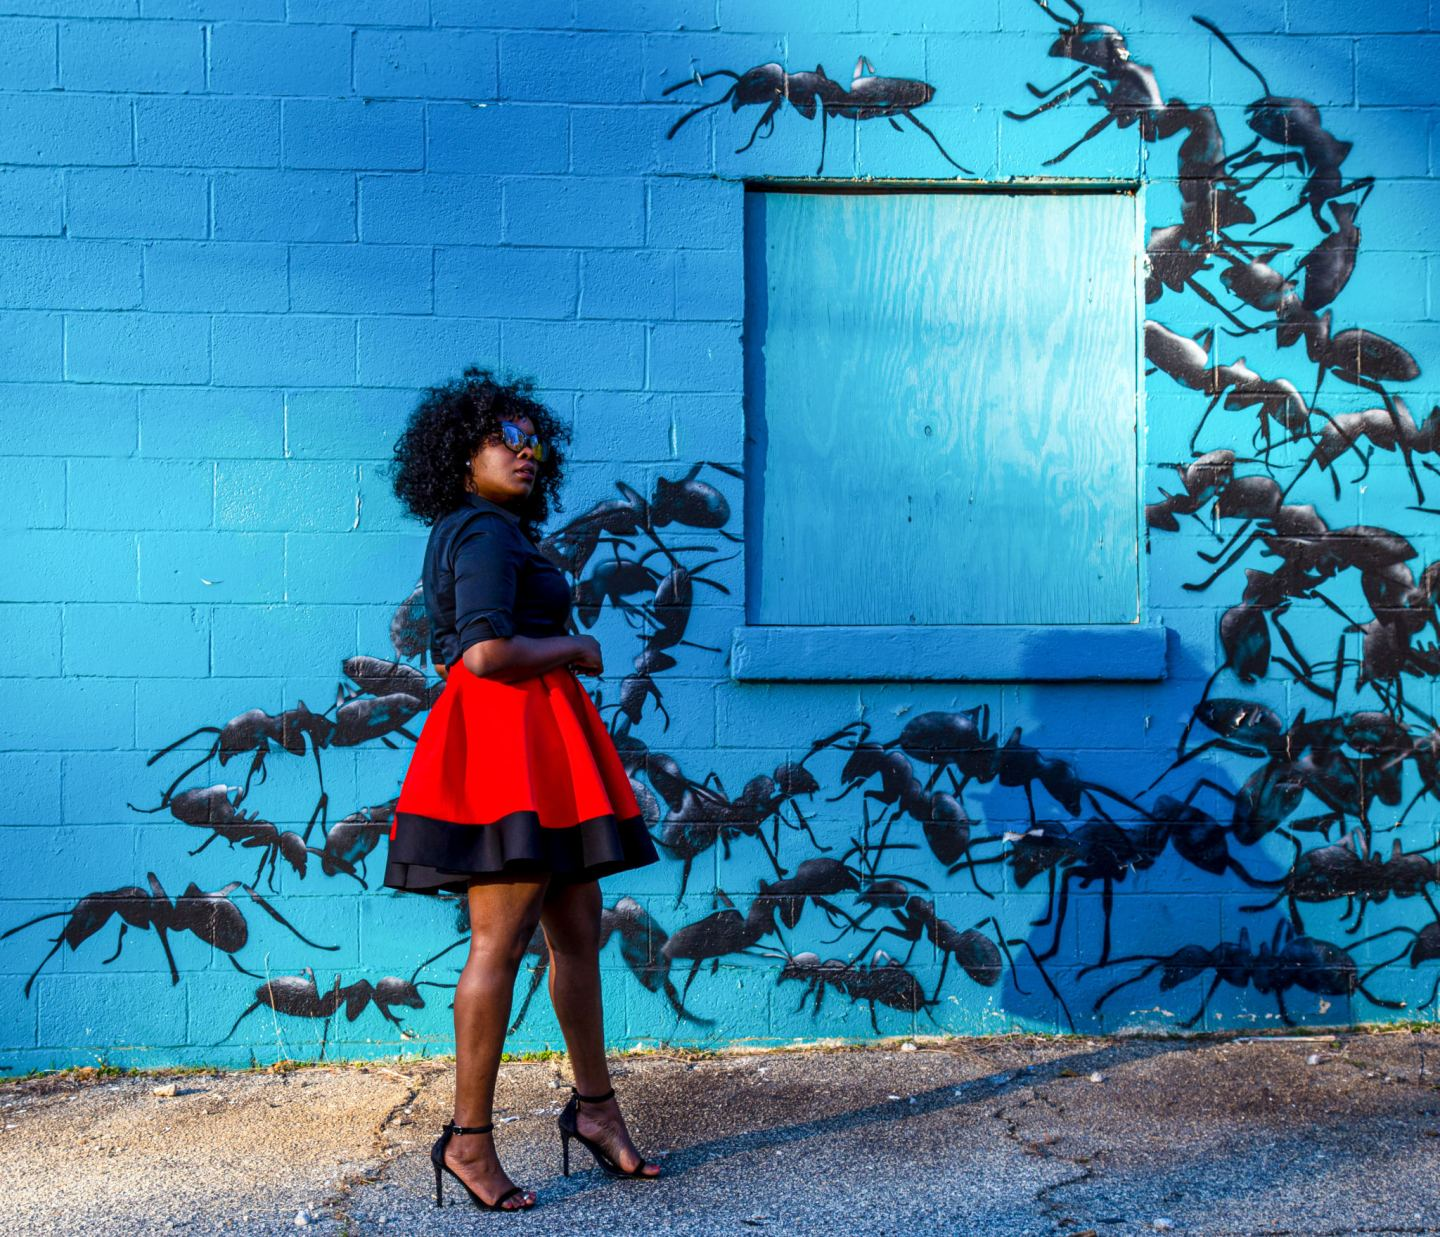 ChiChi standing in front of an ant mural wall wearing a red neoprene circle skirt